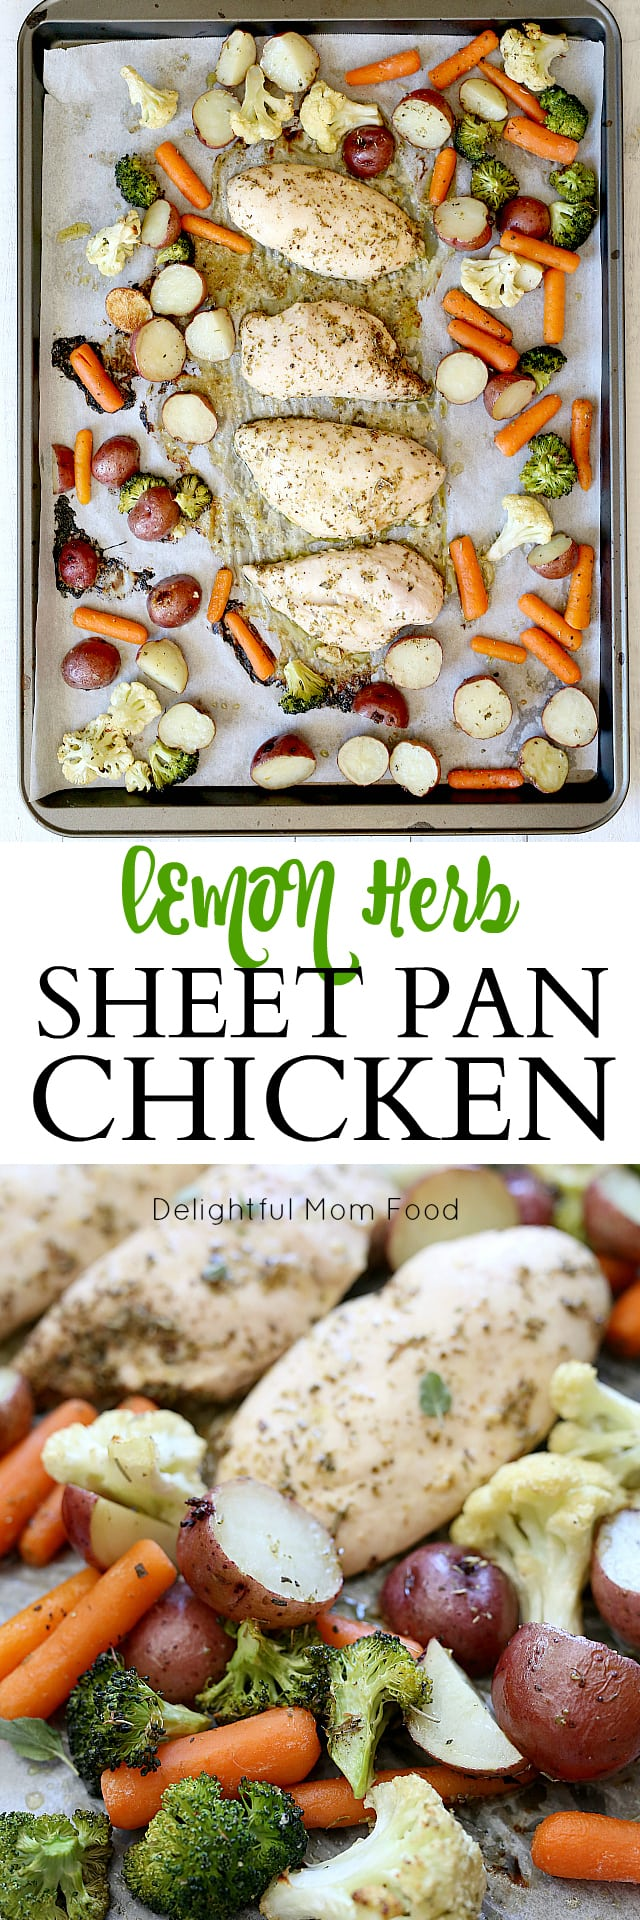 30 Minute Sheet Pan Dinners! Lemony Herb Sheet Pan Chicken, Broccoli, Carrots, Cauliflower, and Red Potatoes